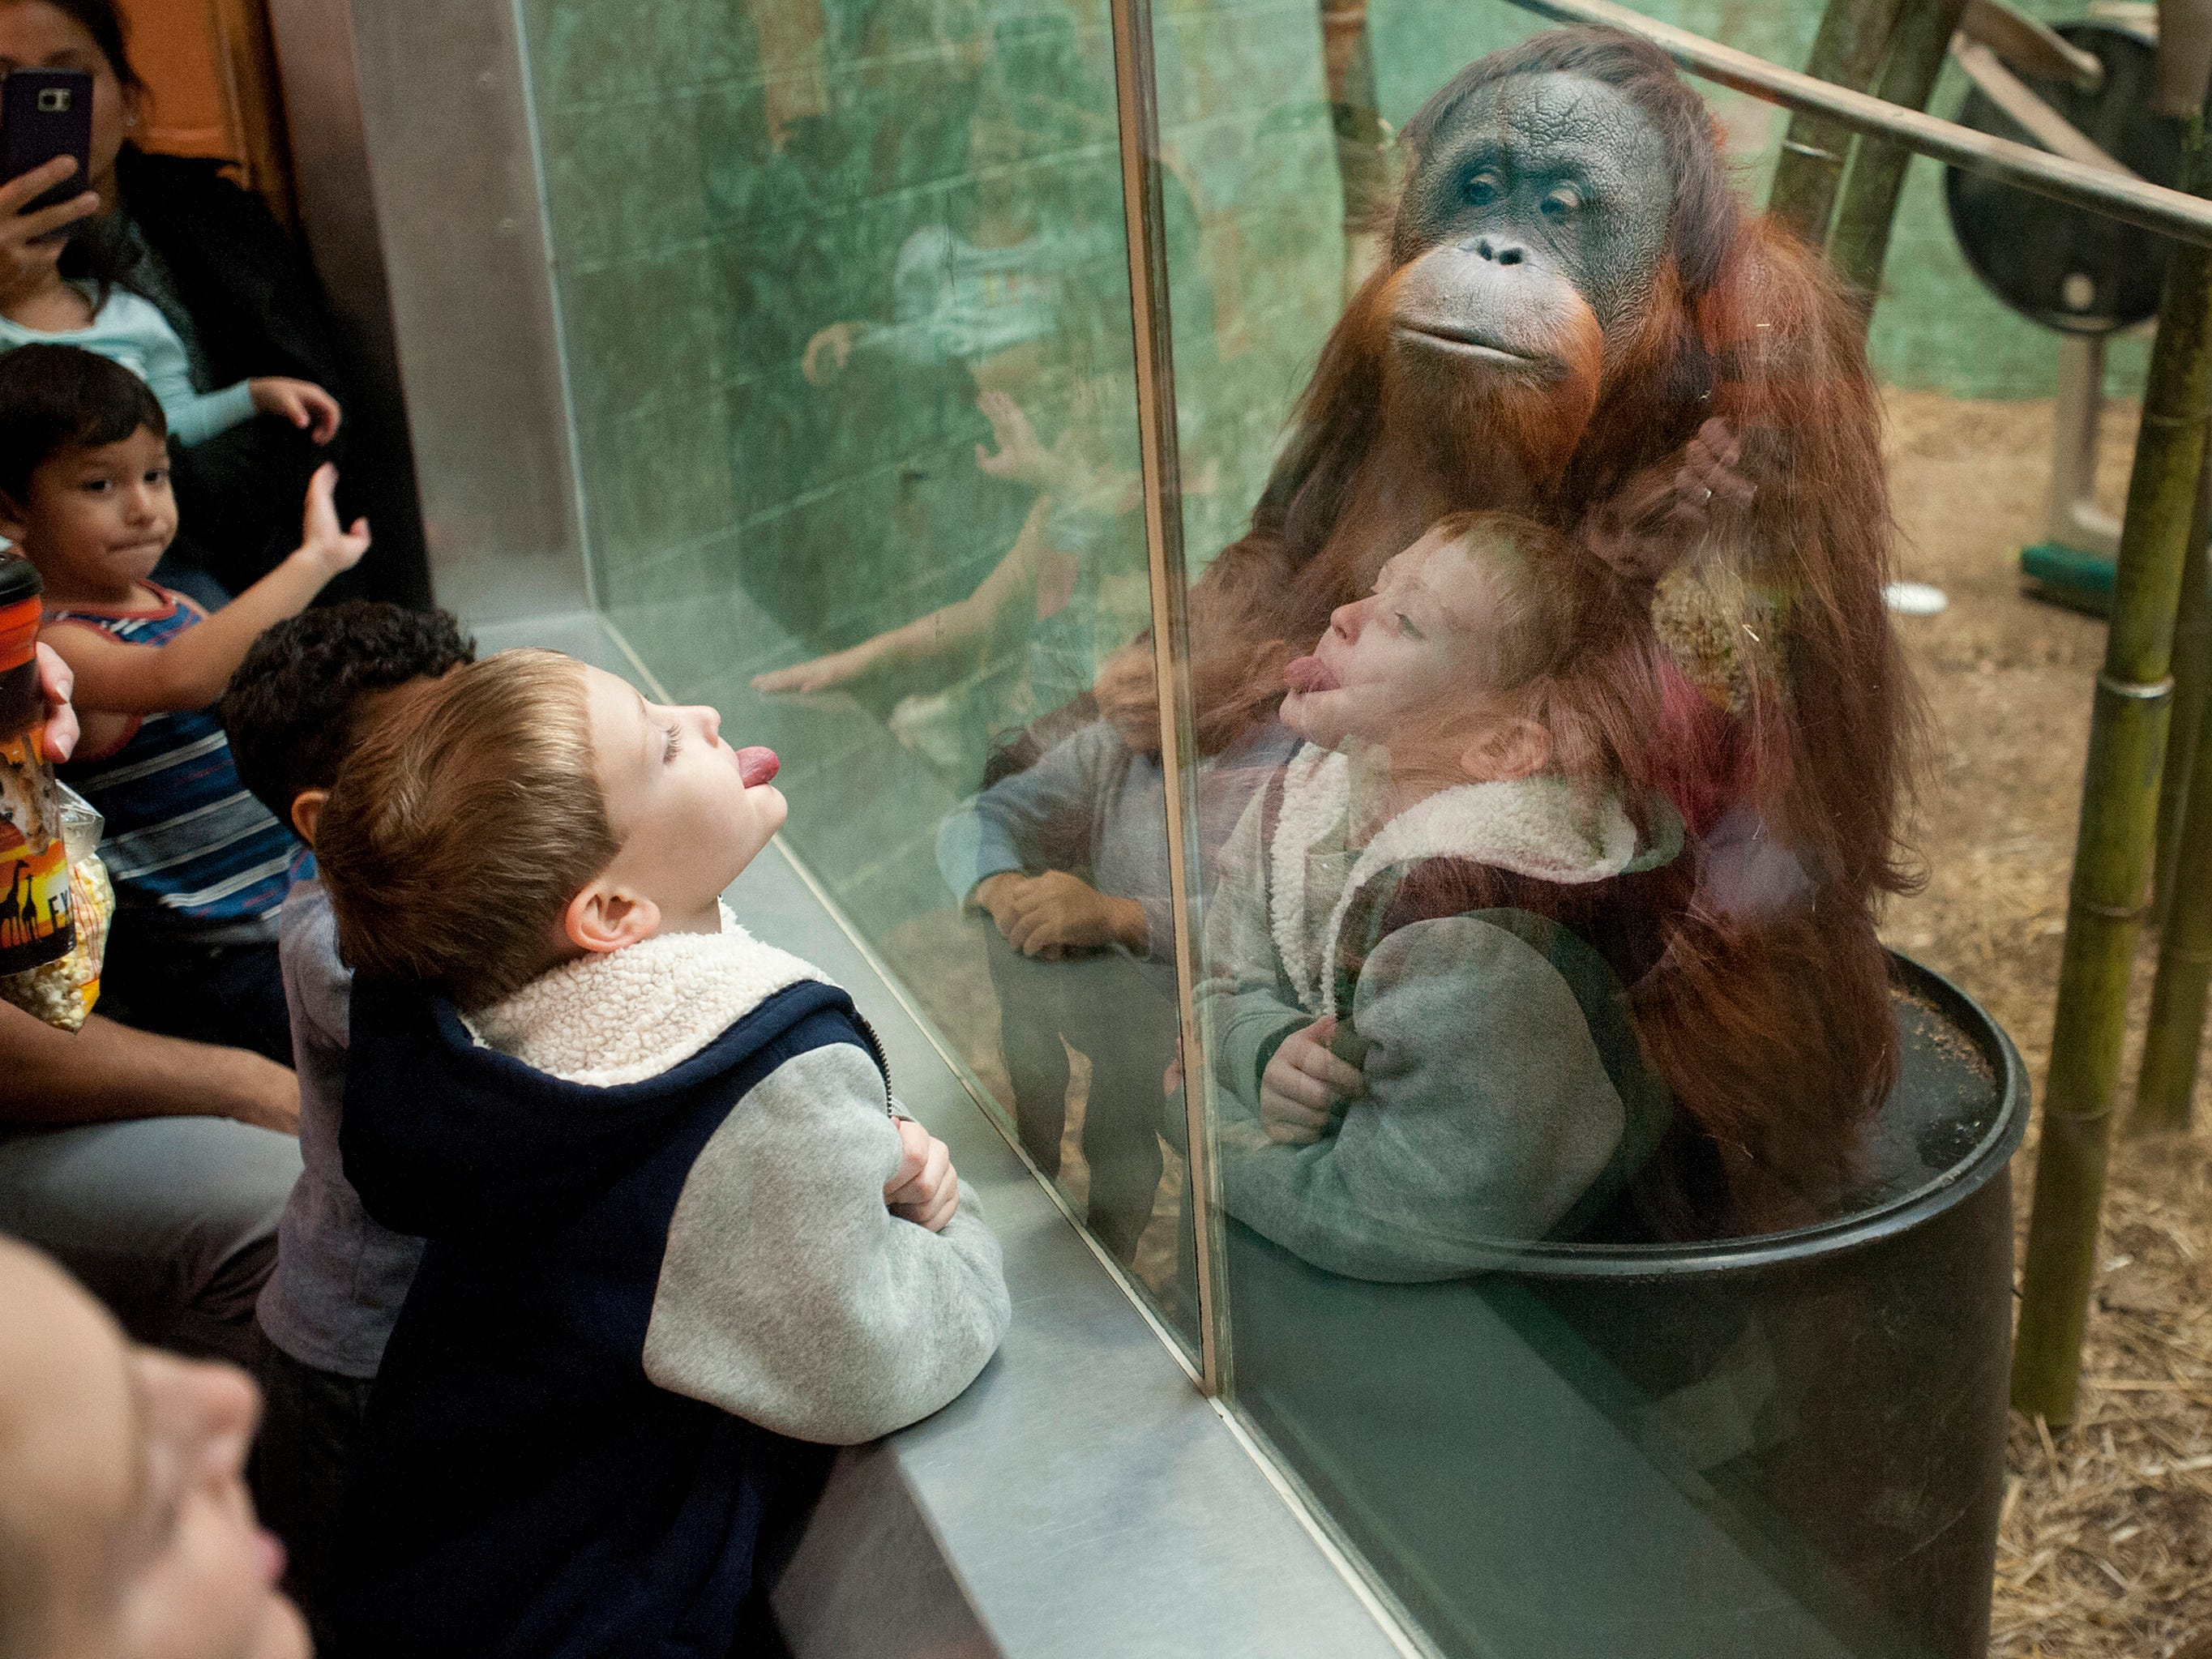 Tyler Edwards, age 6, of Fairdale, sticks his tongue out at Bella, an orangutan at the Louisville Zoo, watching him through a glass partition. November 04, 2018